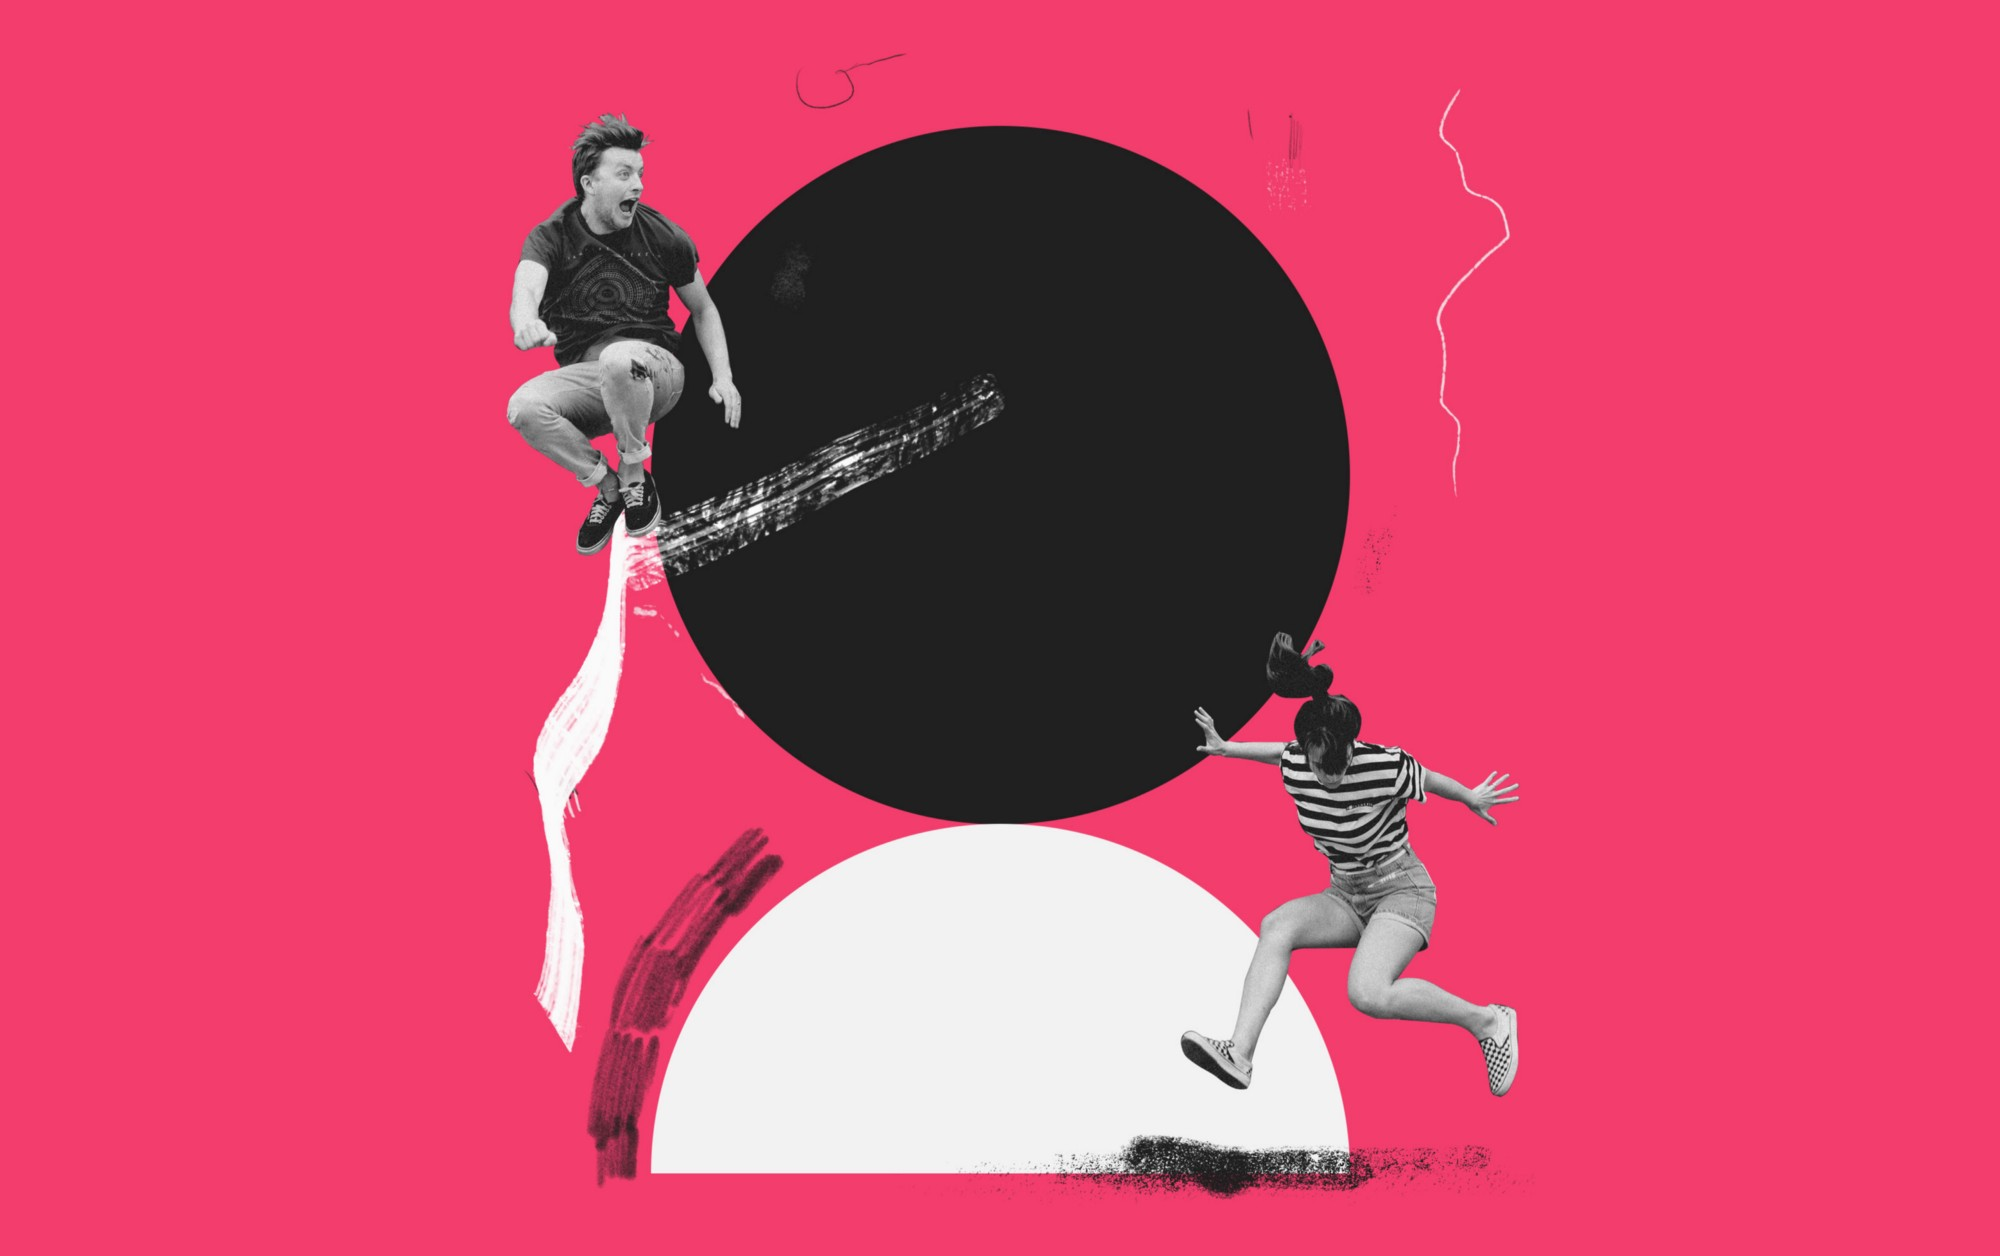 An artwork representing a man and a woman jumping. It has a pink background with a black circle and a white half-circle.